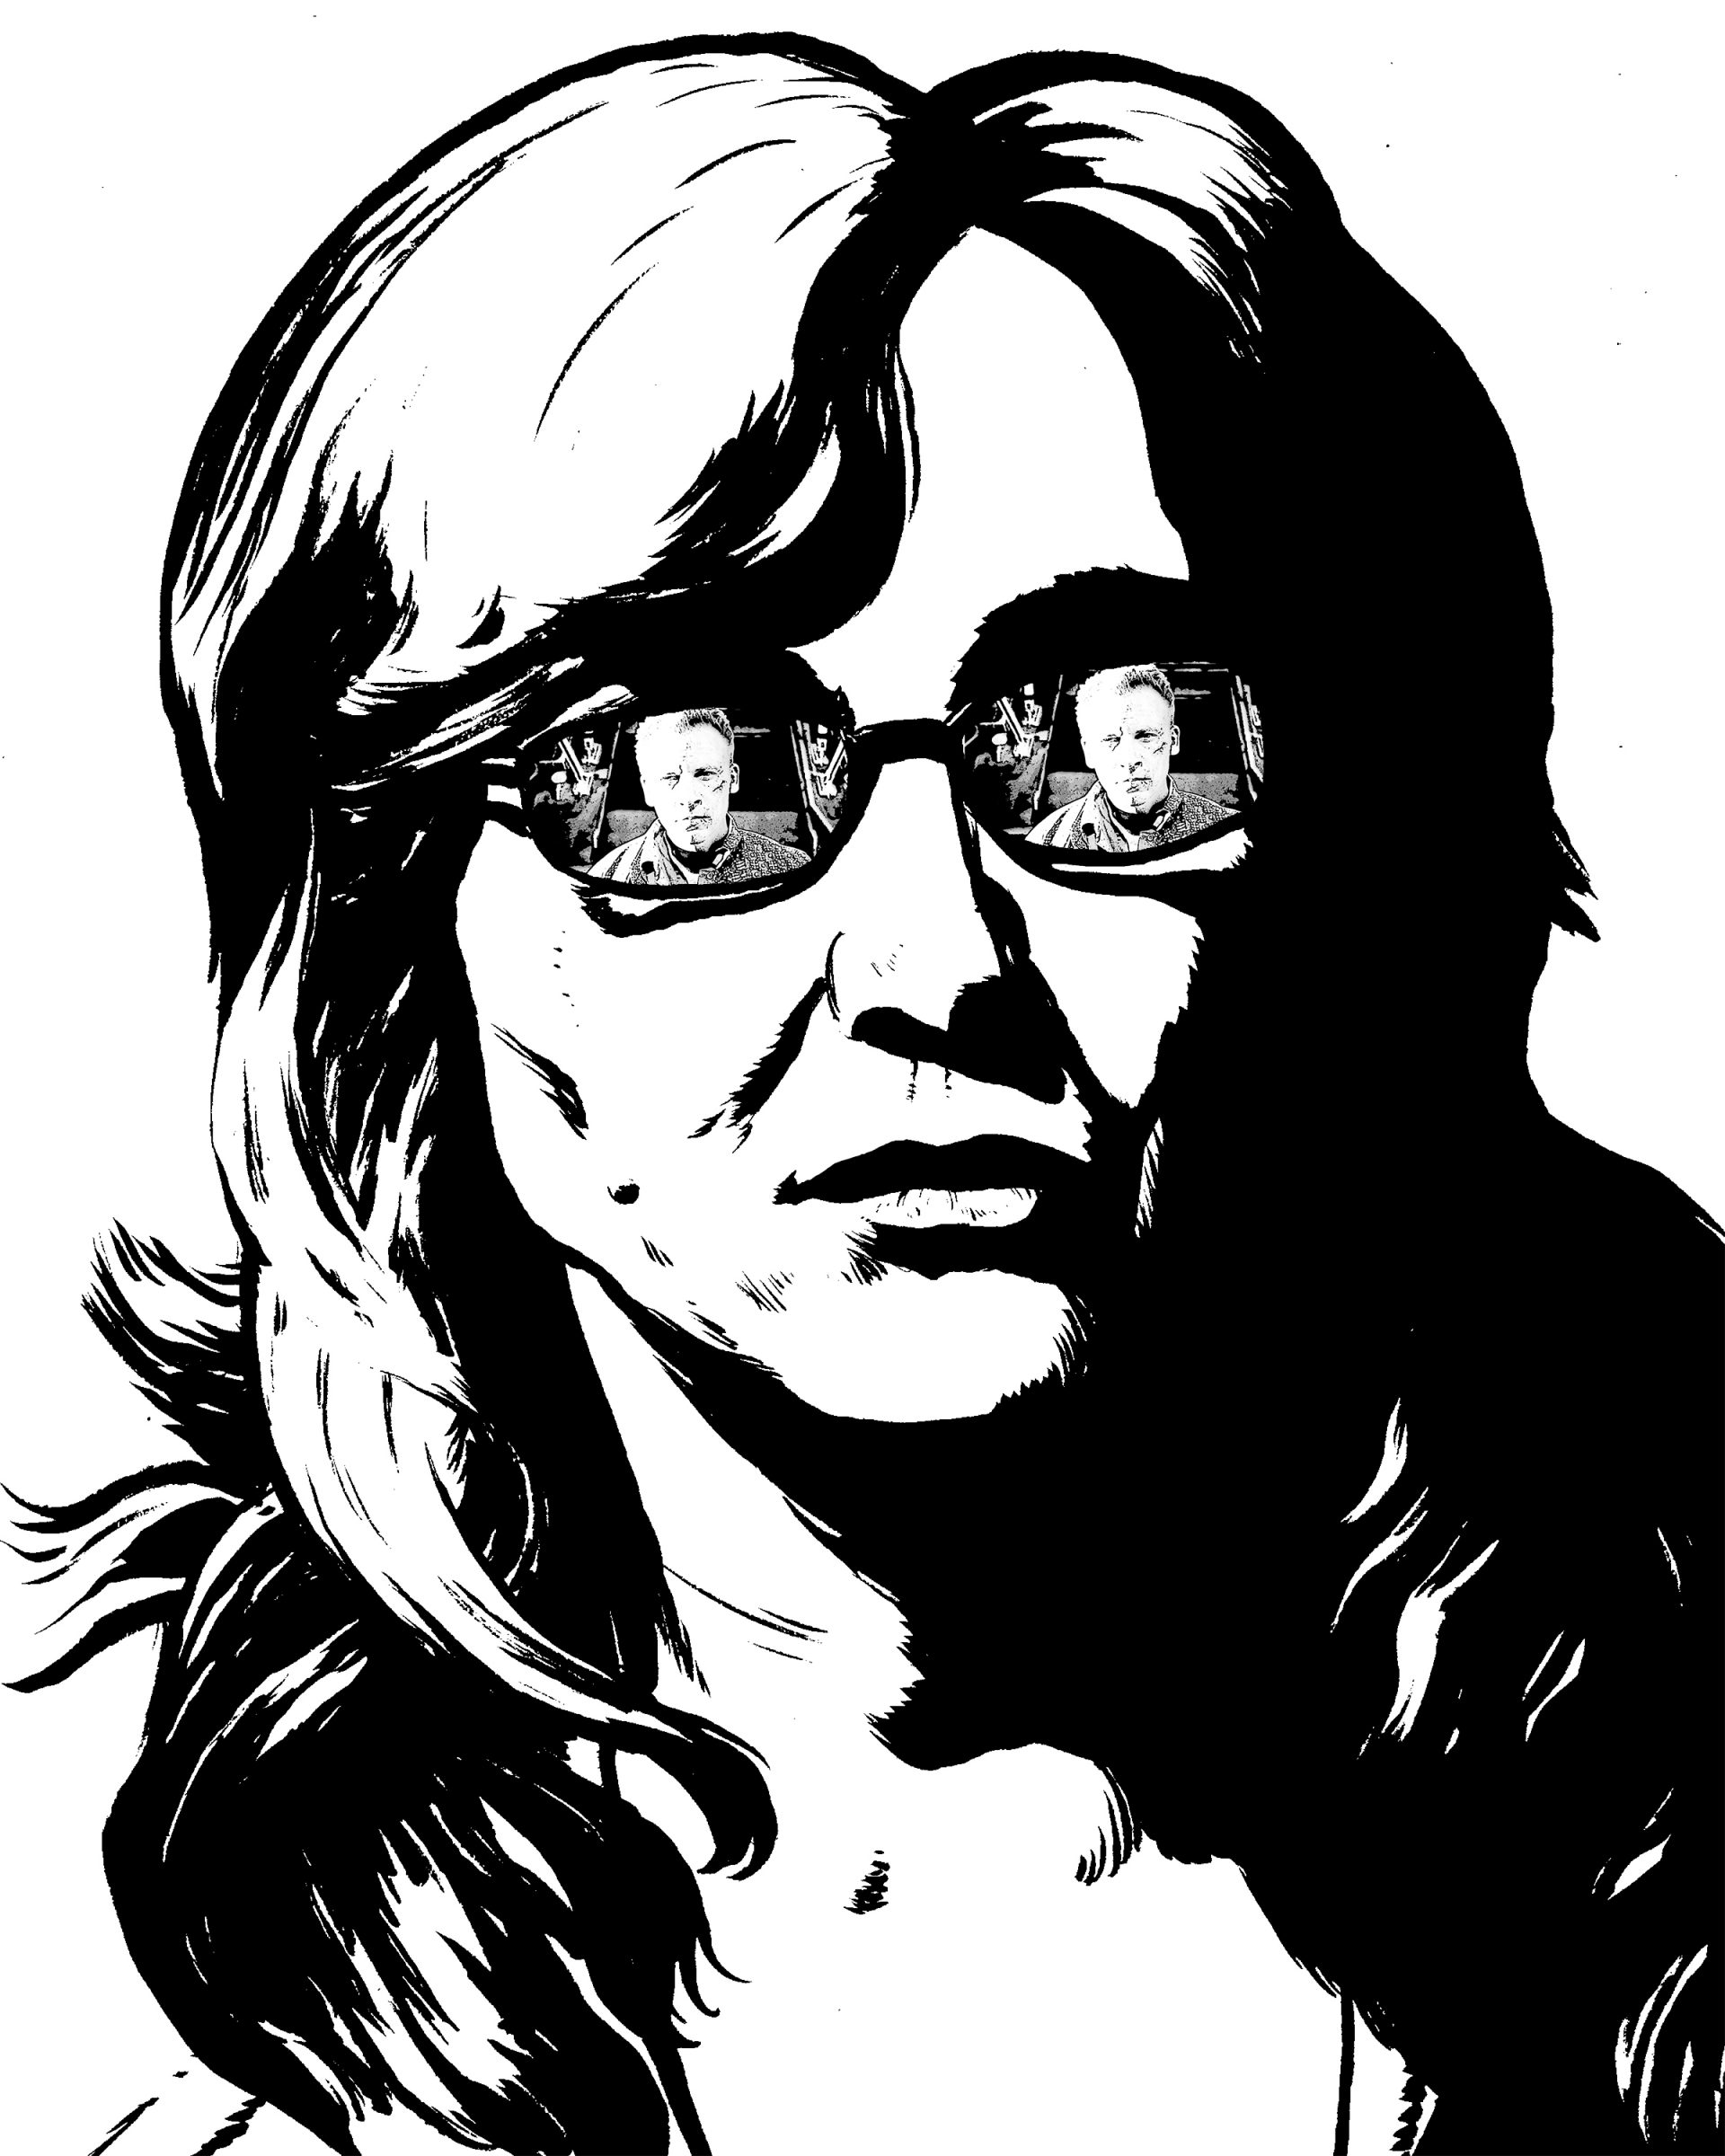 Hall of Faces - Laura Roslin (Mary McDonnell), Battlestar Galactica